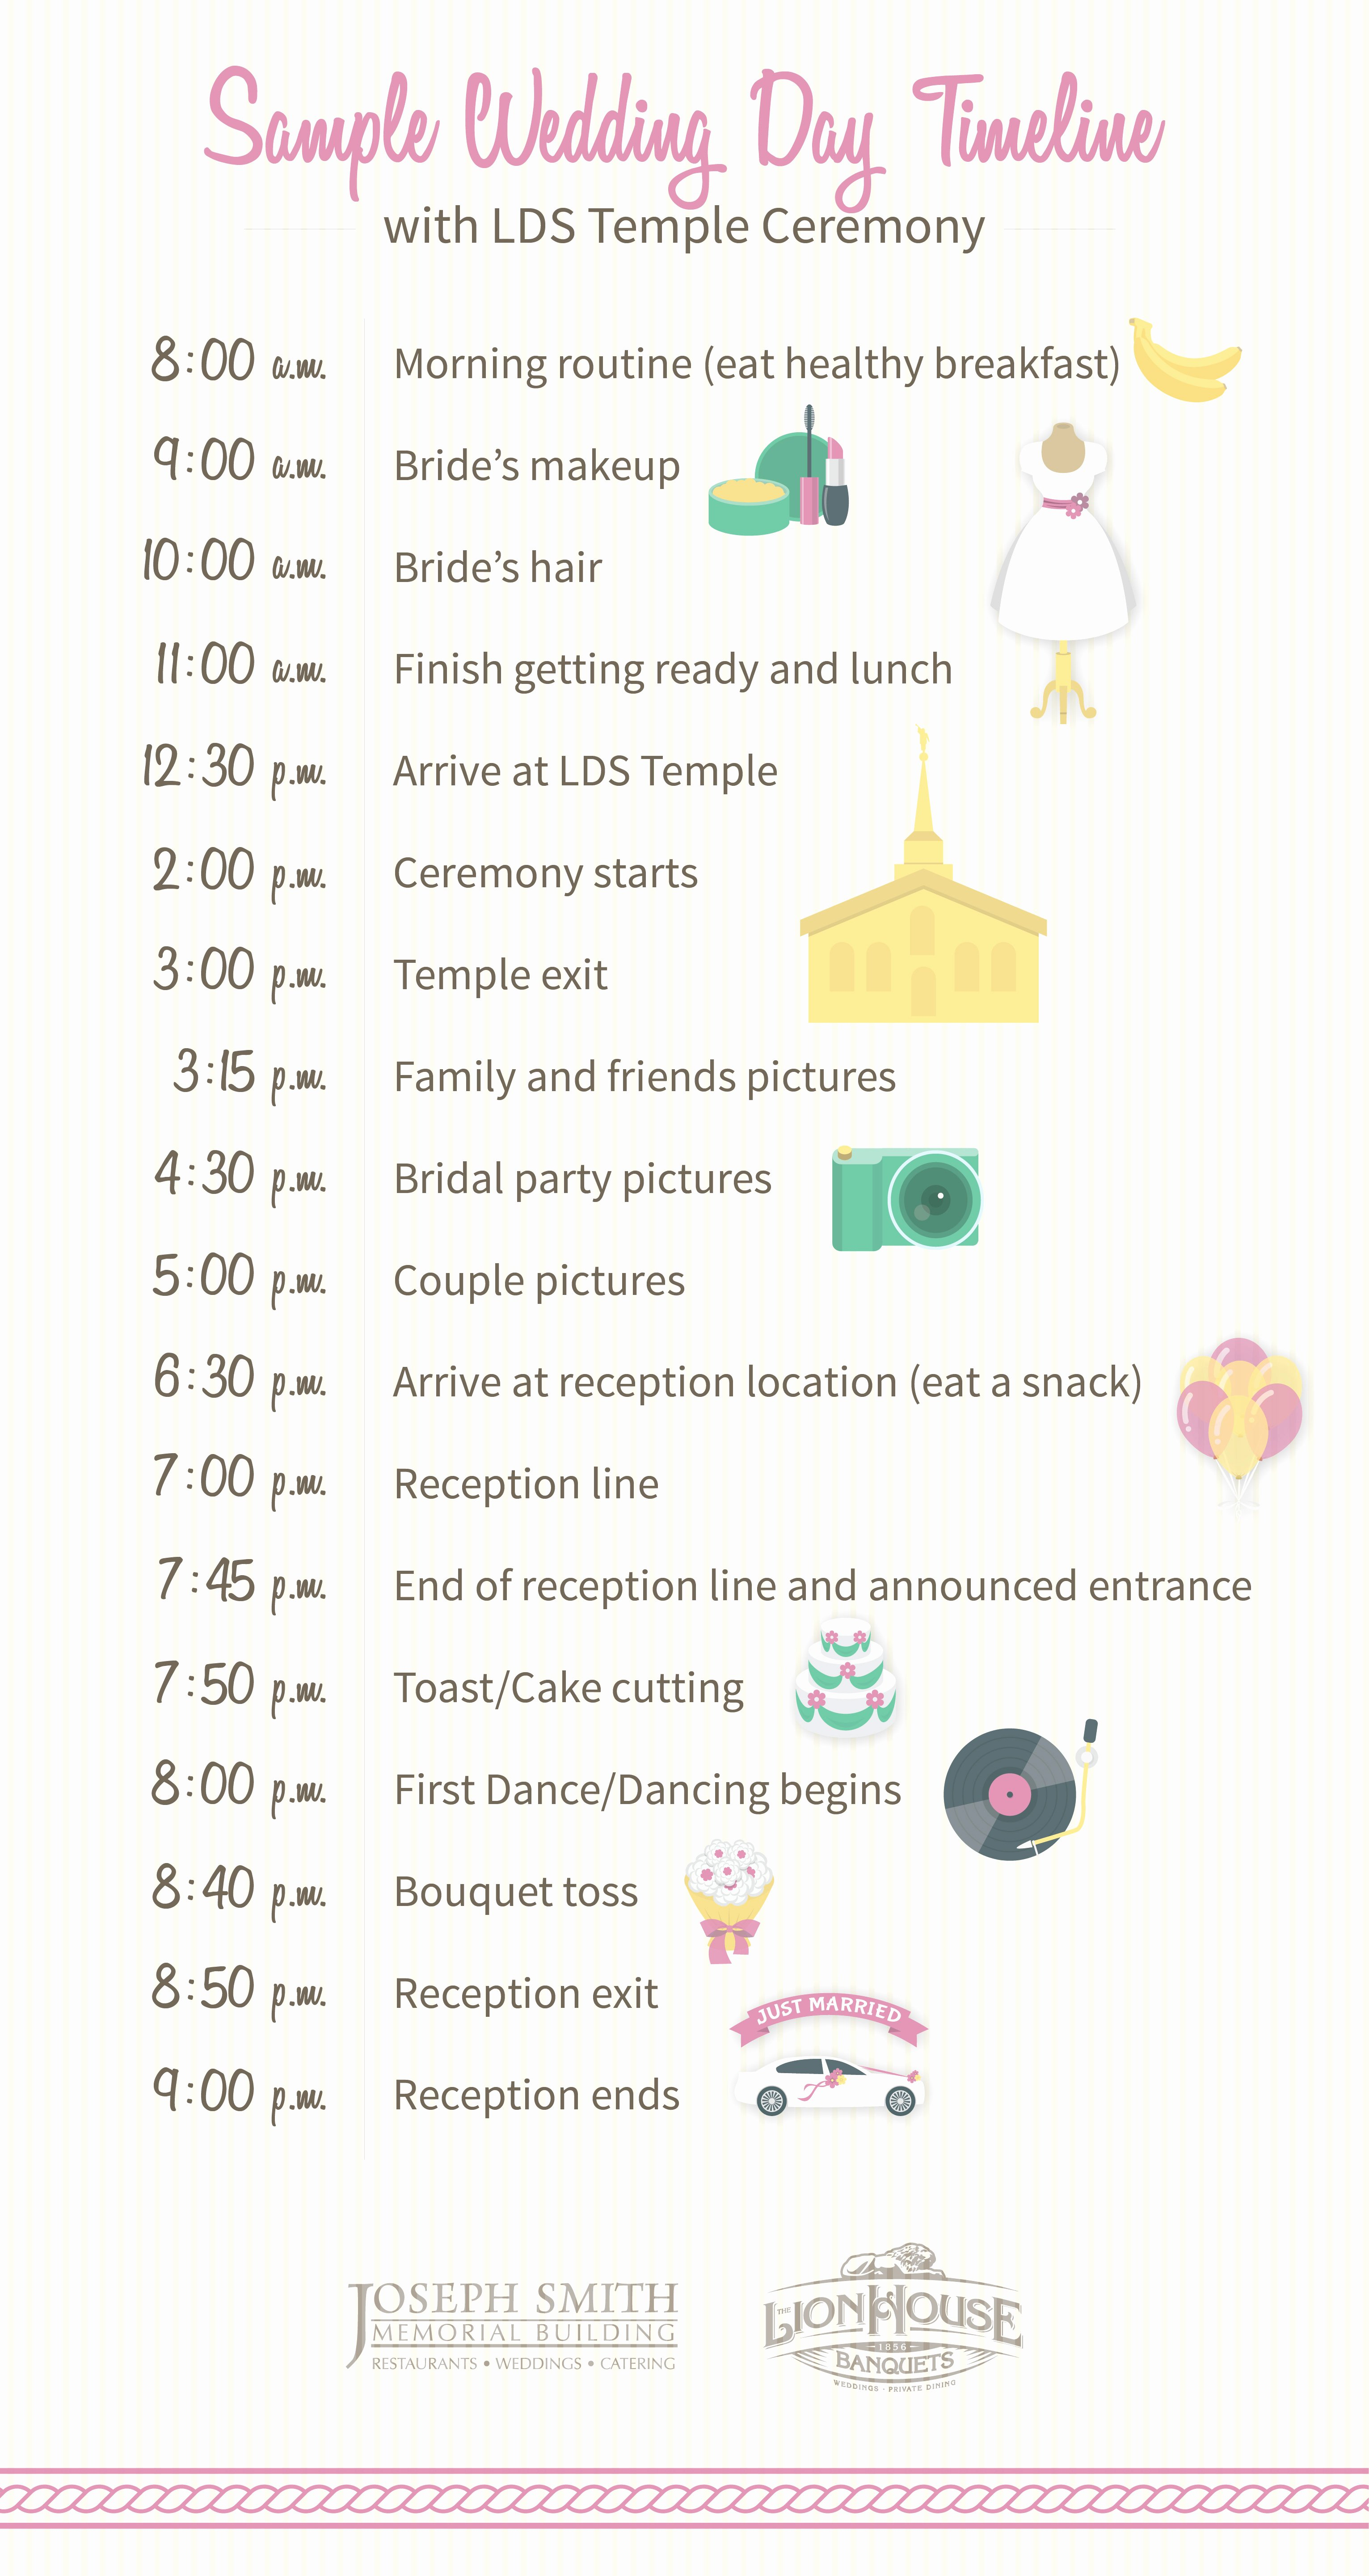 How to Build Your Wedding Day Timeline